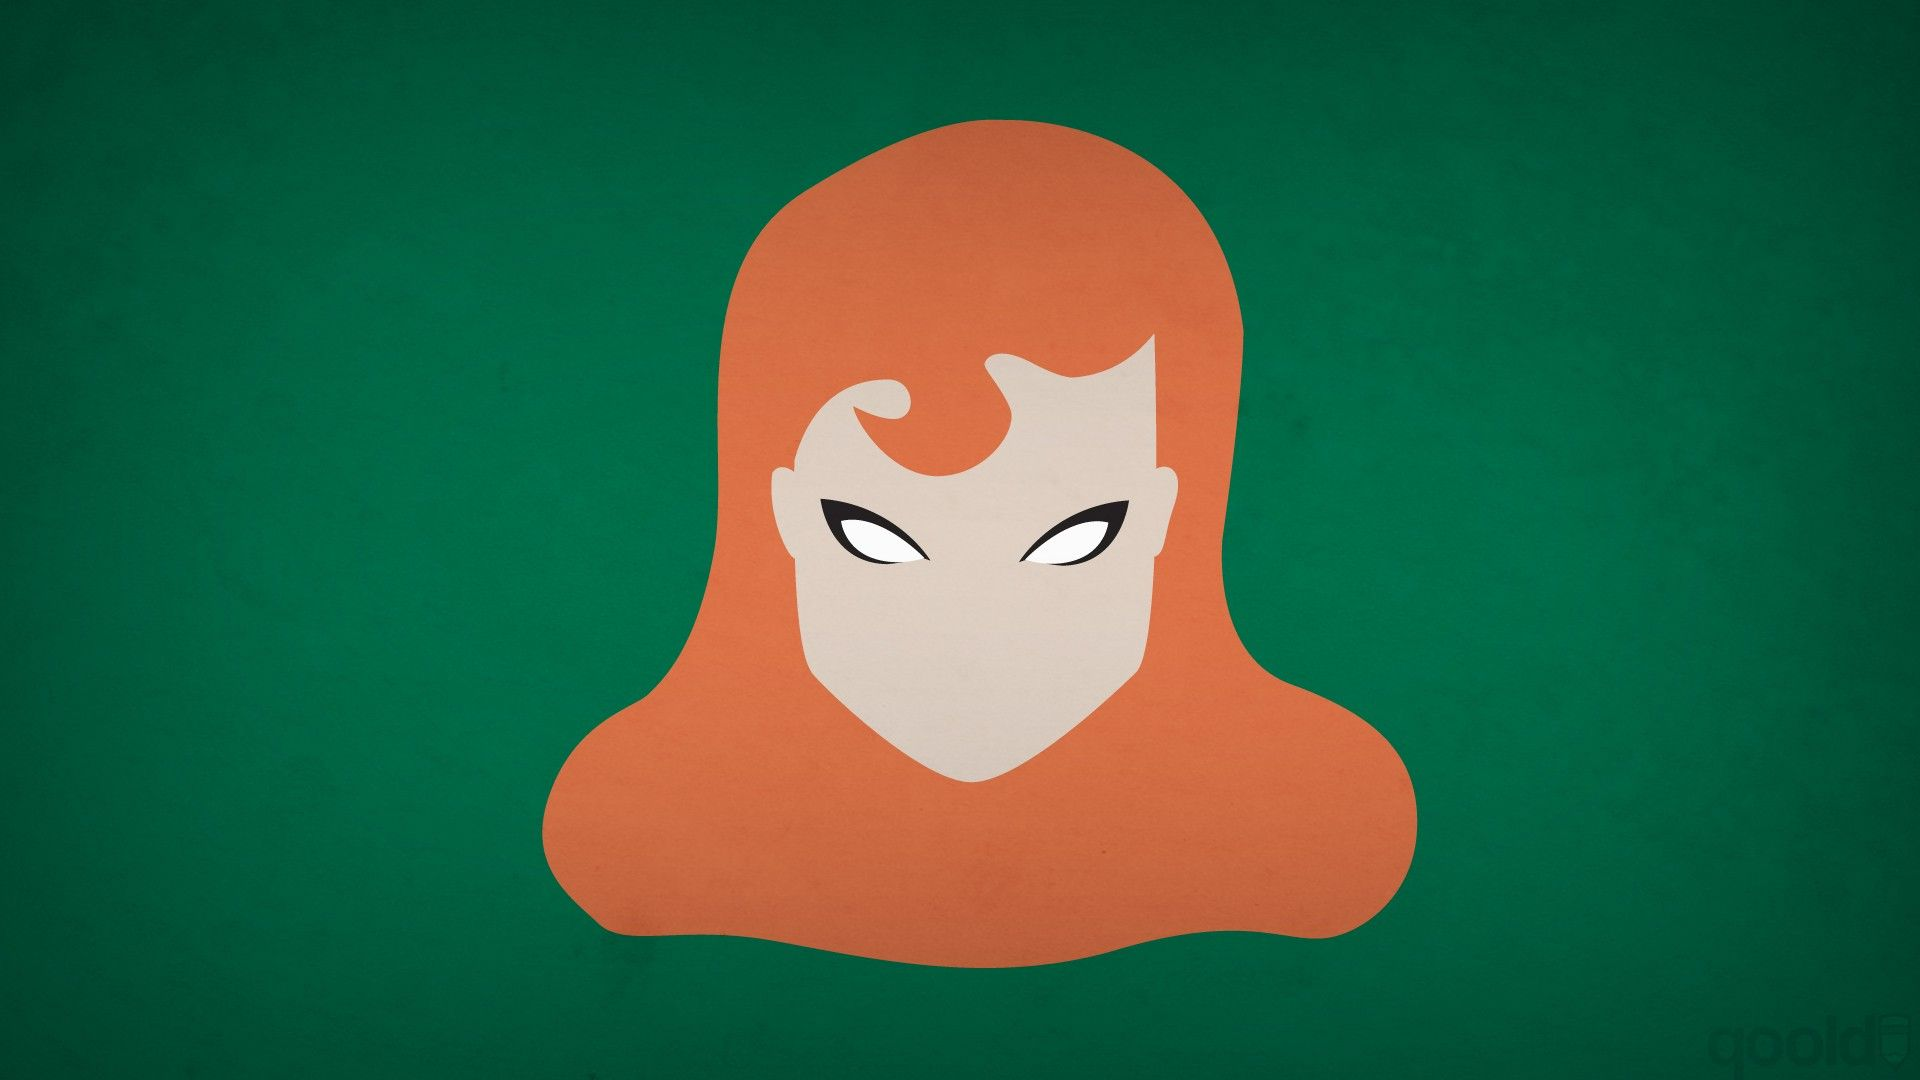 1920x1080 DC Comics, Poison Ivy, Blo0p, Minimalism Wallpapers HD ...